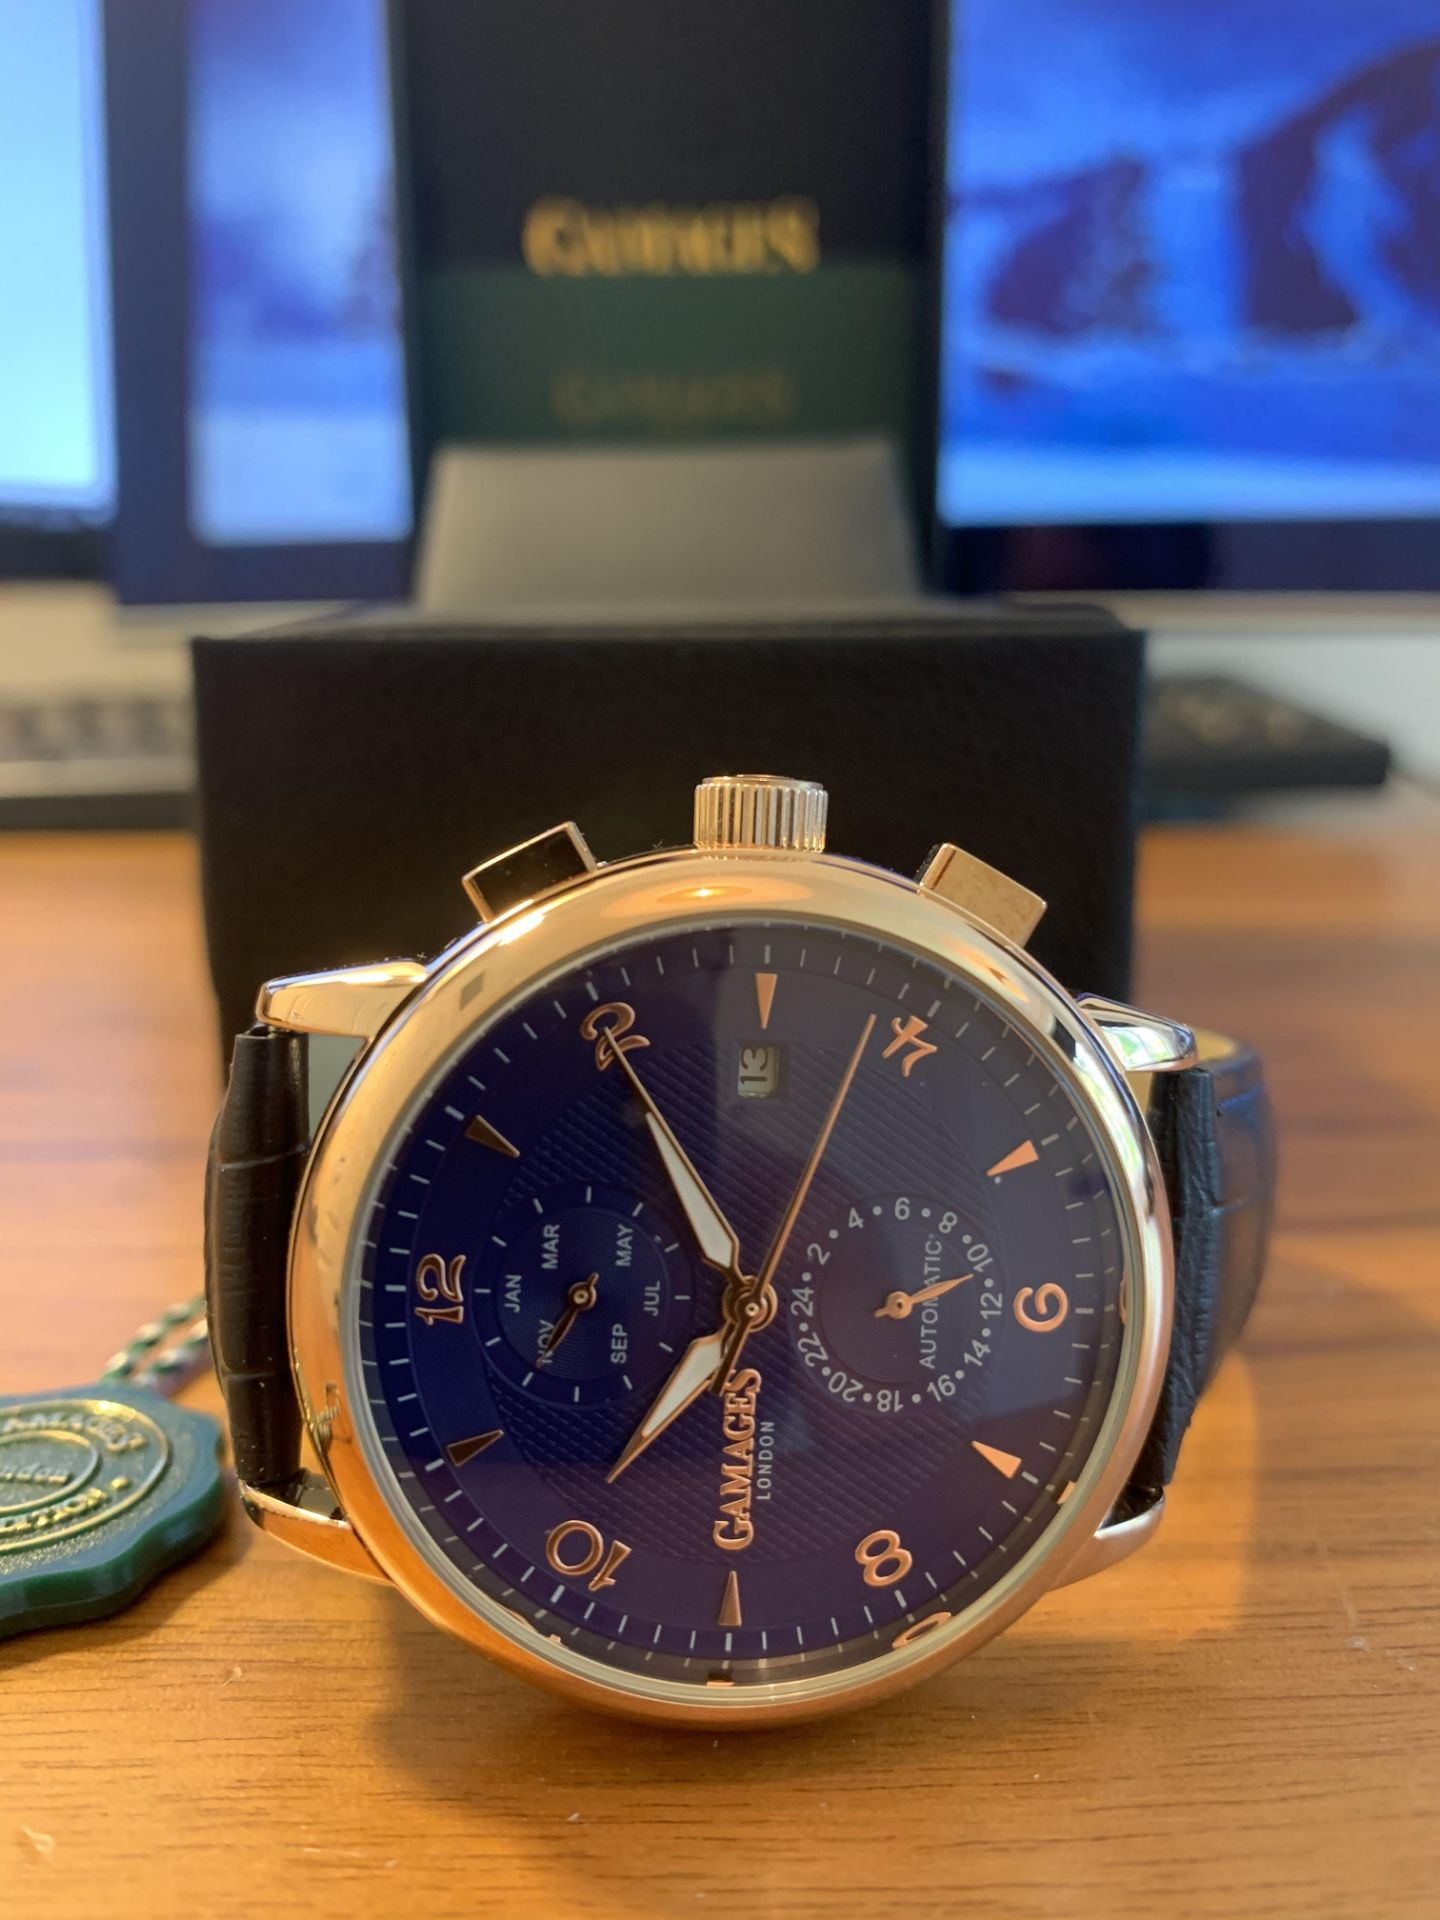 Limited Edition Hand Assembled Gamages Mystique Blue – 5 Year Warranty & Free Delivery - Image 3 of 5